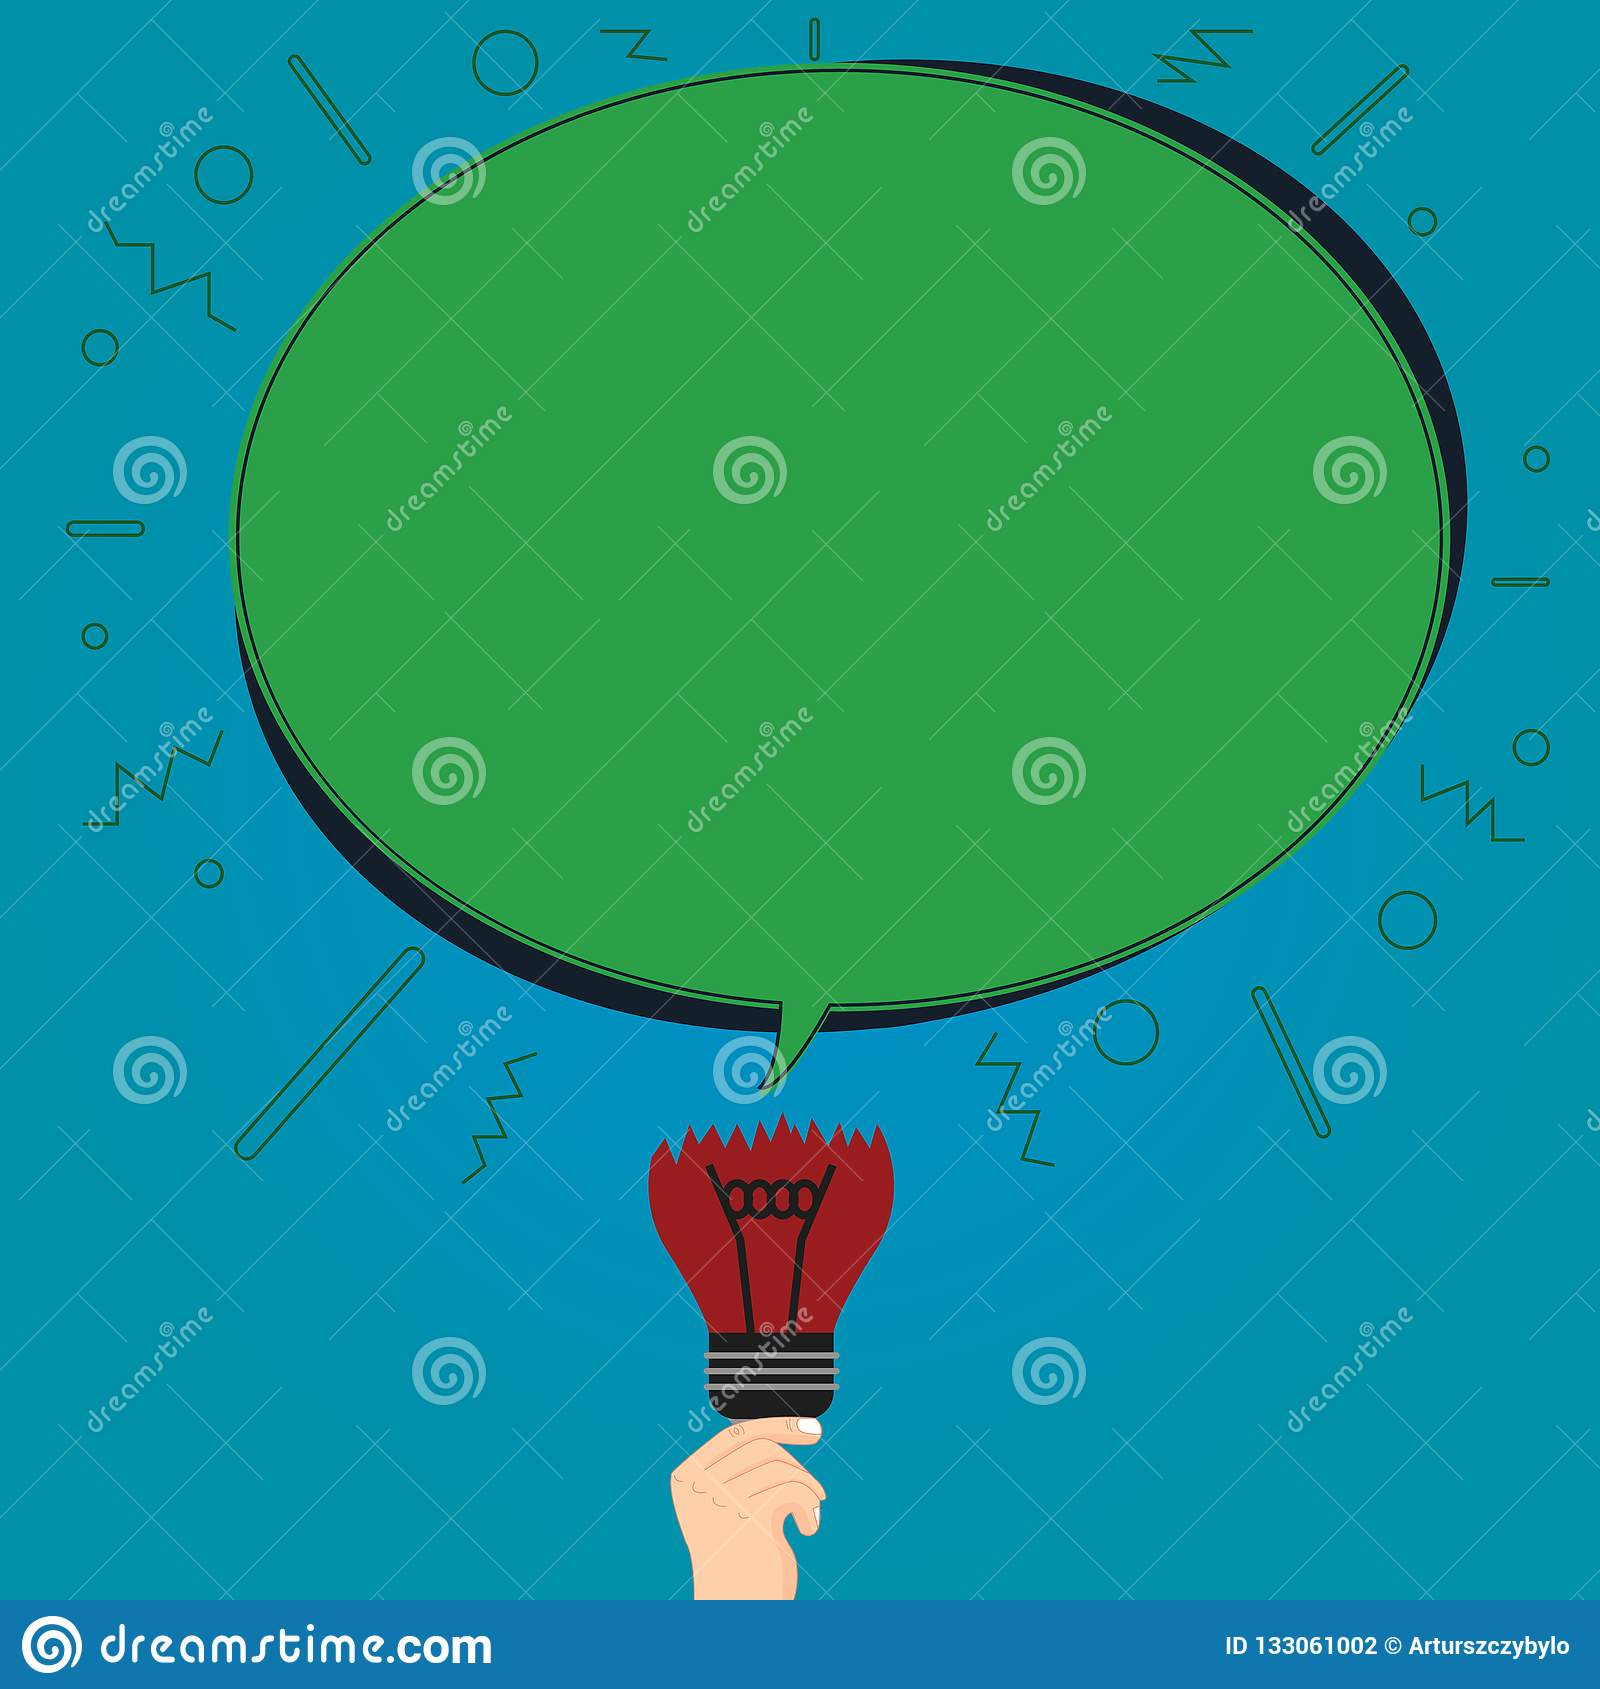 Design business concept Empty copy space modern abstract background Blank Oval Color Speech Bubble Above a Broken Bulb